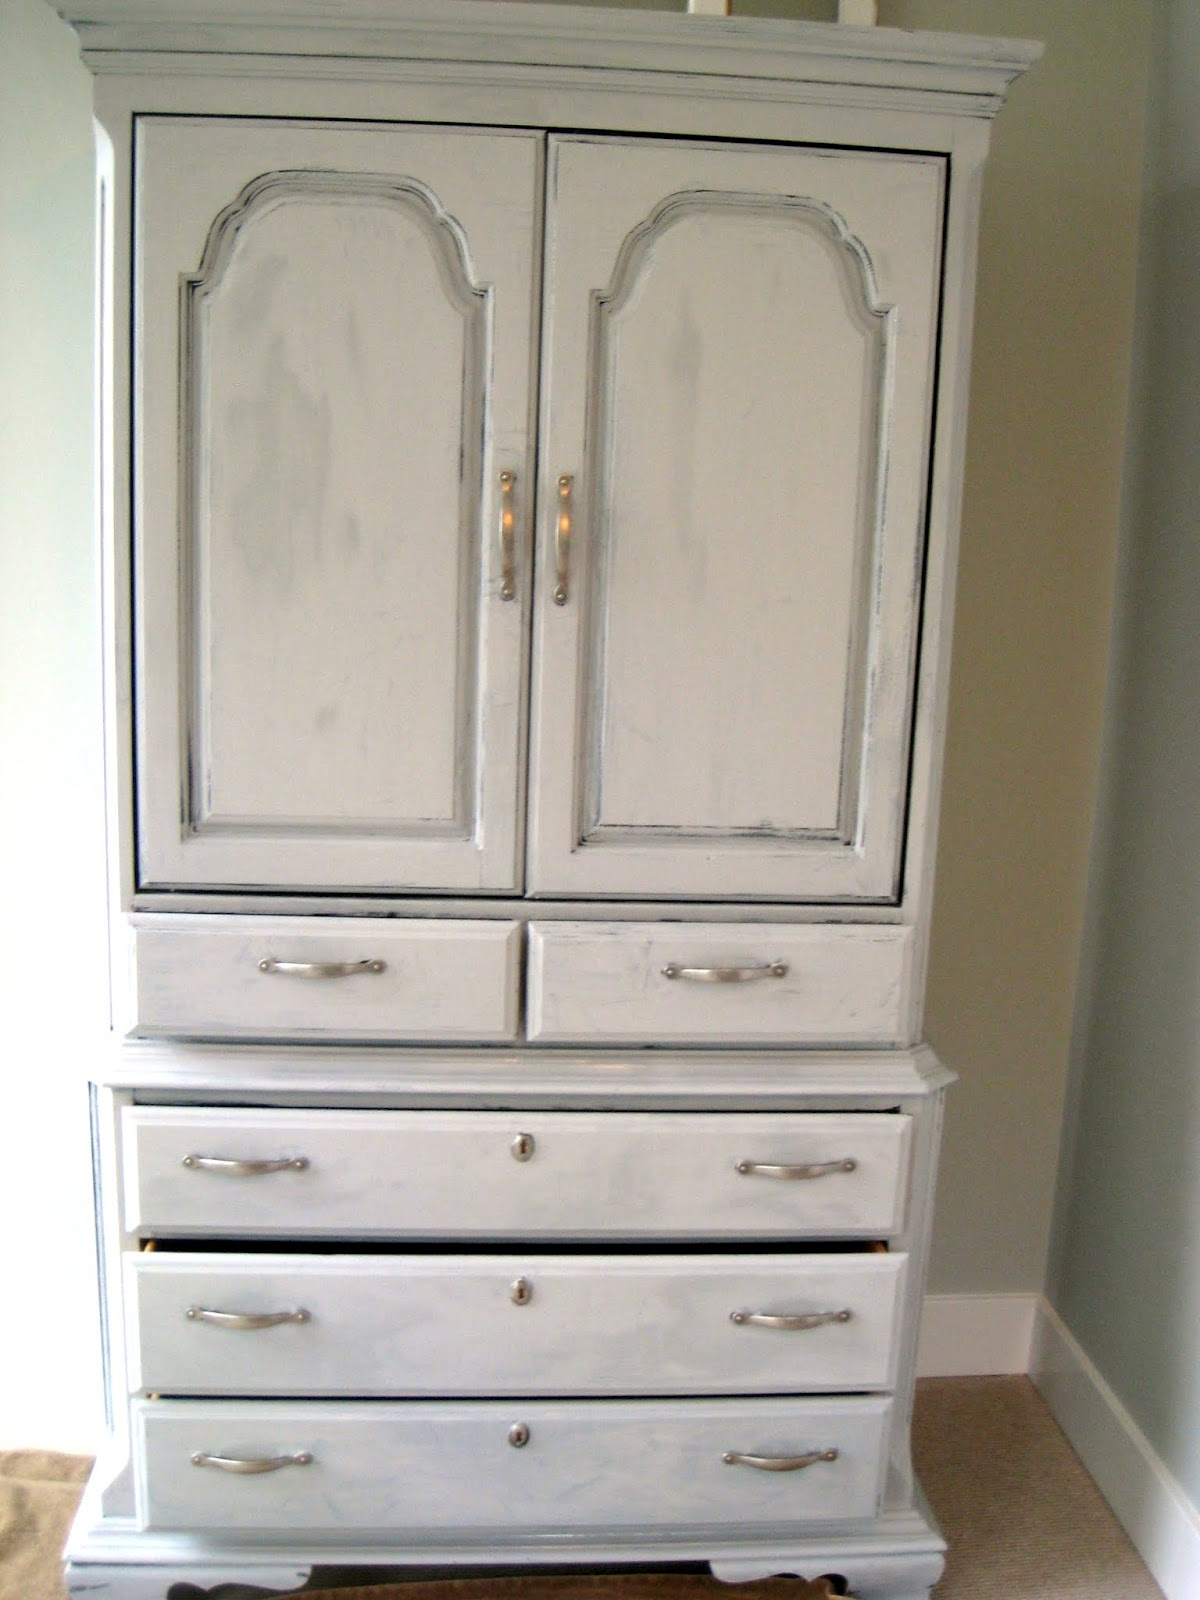 Fashionable White Painted Wardrobes With How To Annie Sloan Chalk Paint – The Lilypad Cottage (View 1 of 15)